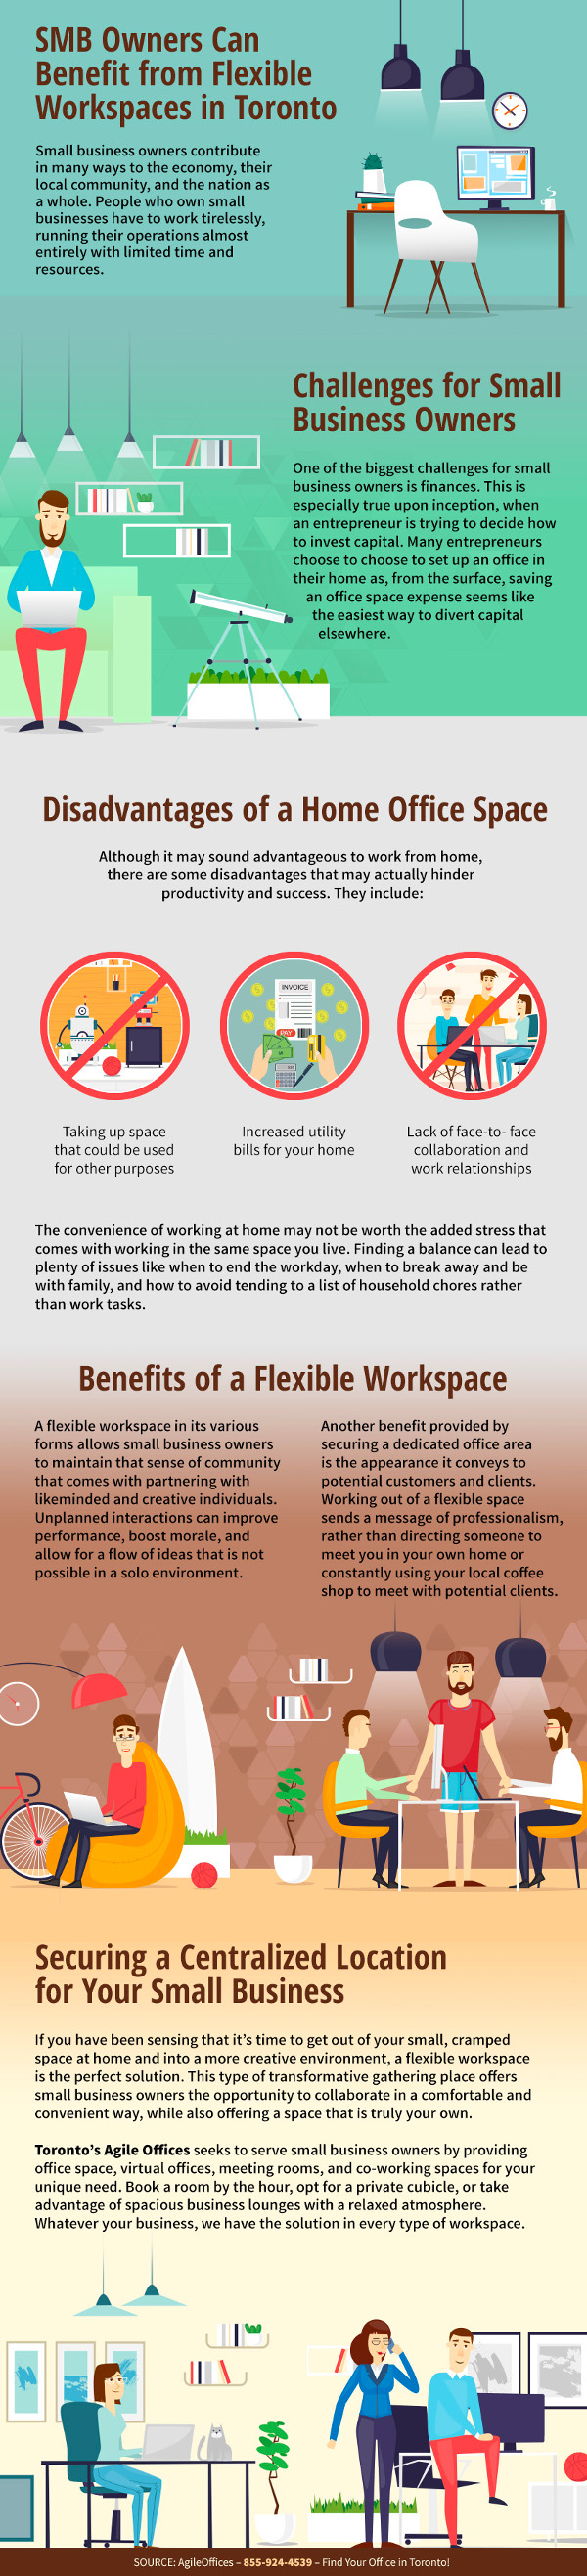 smb-owners-can-benefit-from-flexible-workspaces-in-toronto